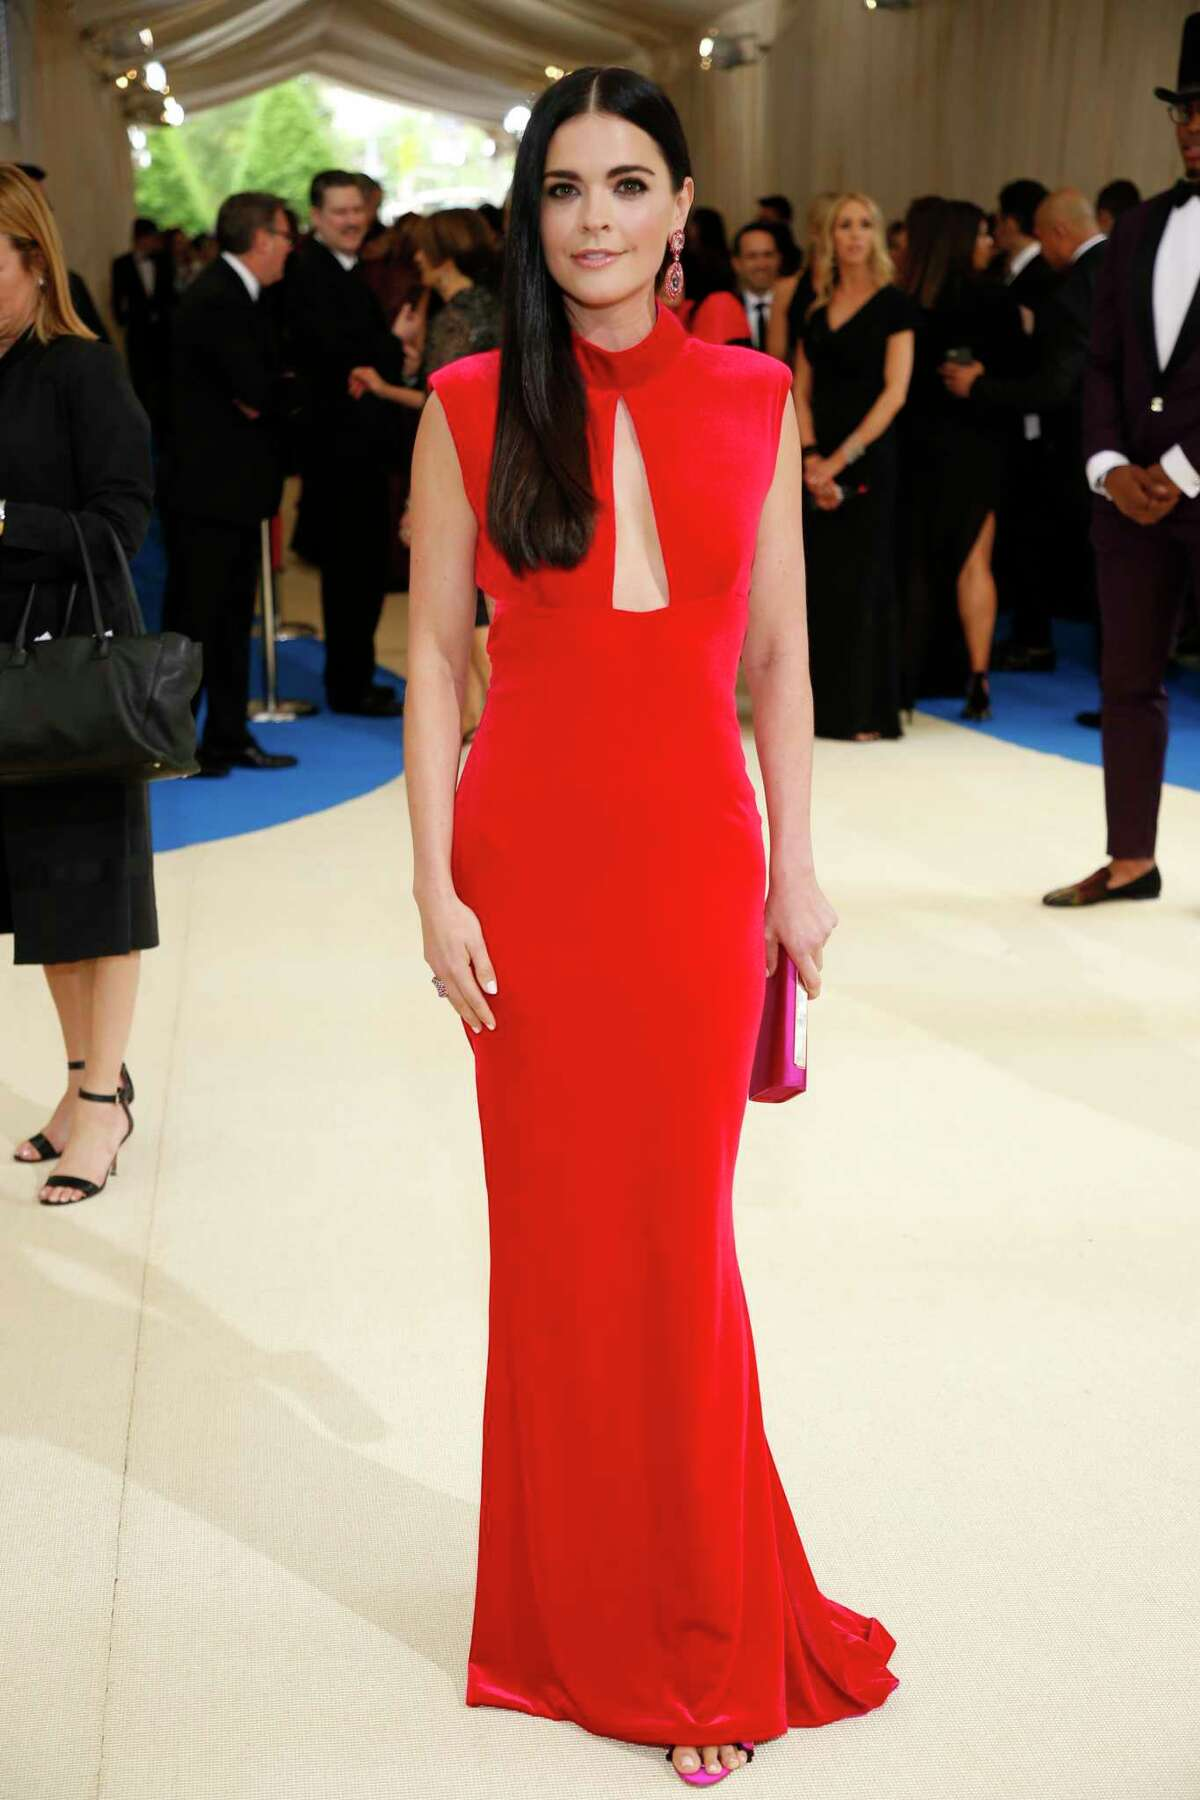 Katie Lee arrives at the Costume Institute Gala at the Metropolitan Museum of Art in New York, May 1, 2017. (Benjamin Norman/The New York Times) ORG XMIT: XNYT213